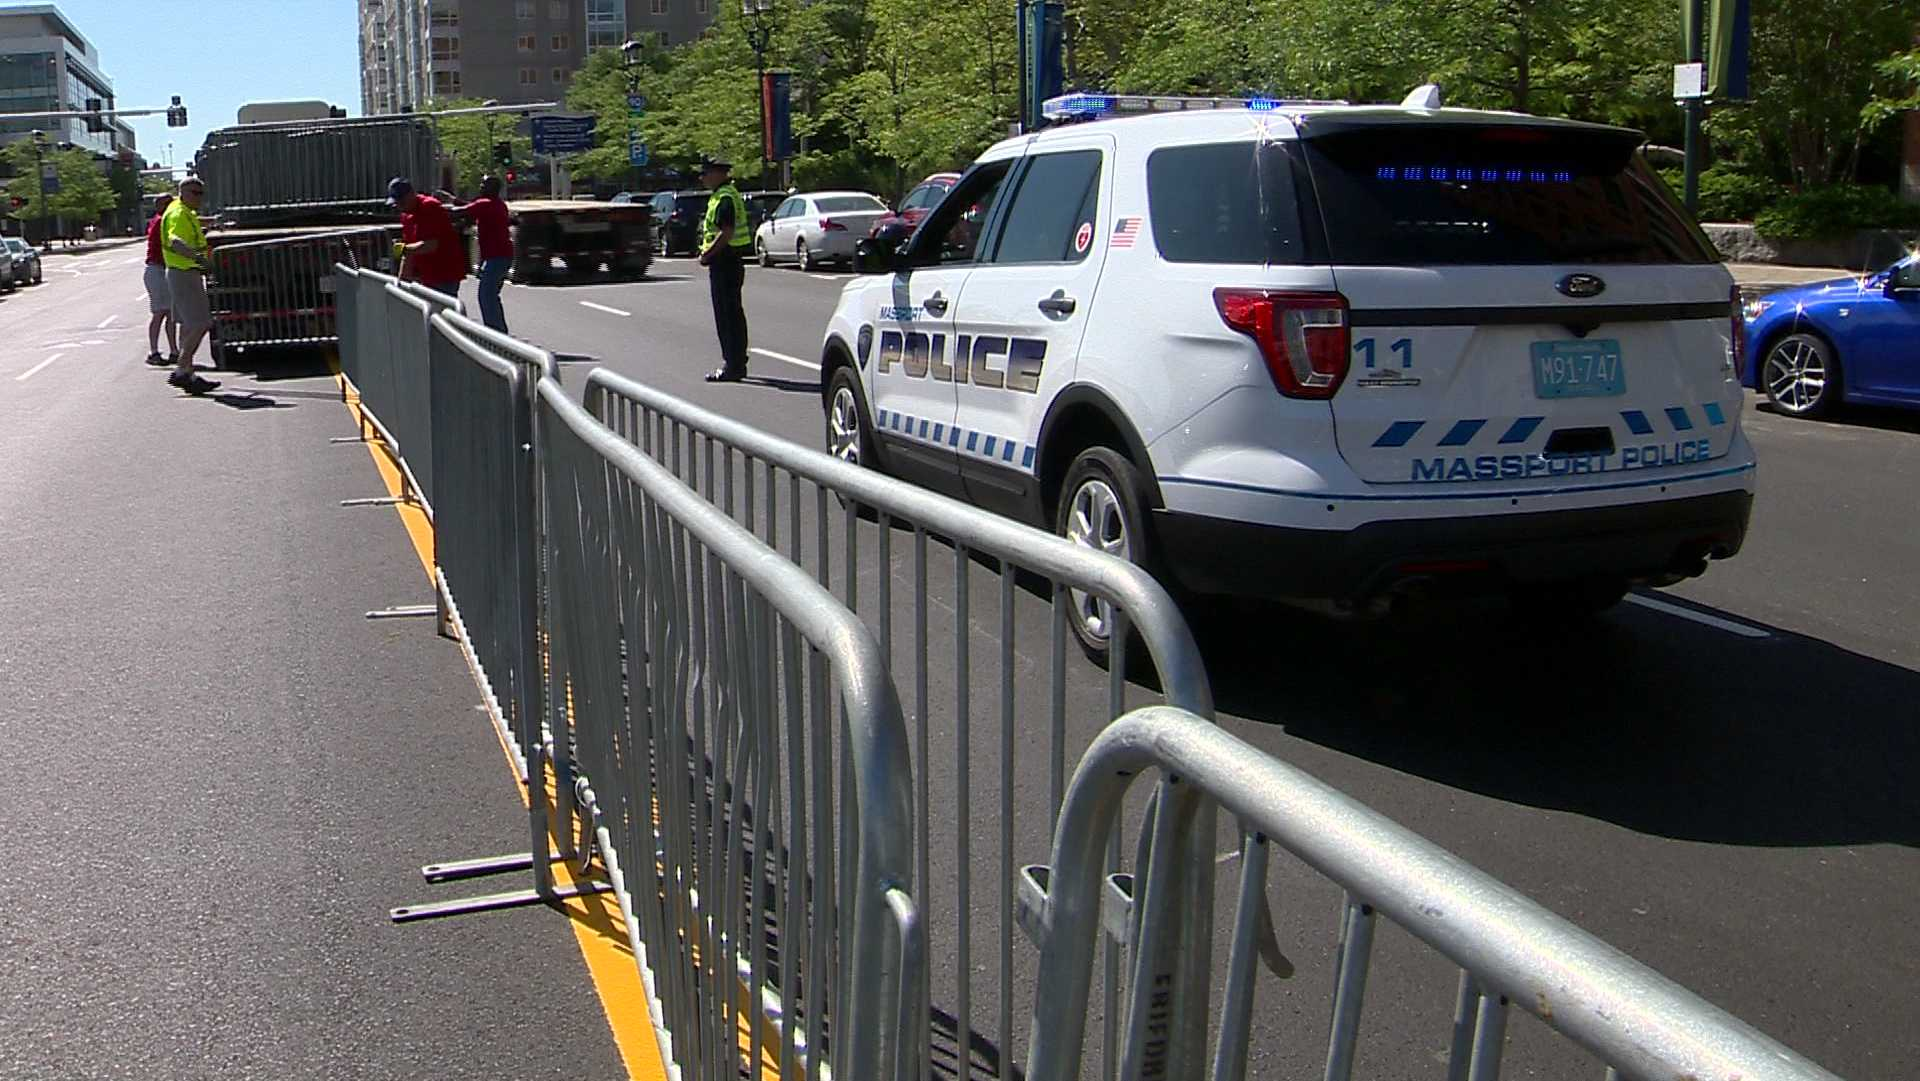 Barricades unloaded ahead of Sail Boston